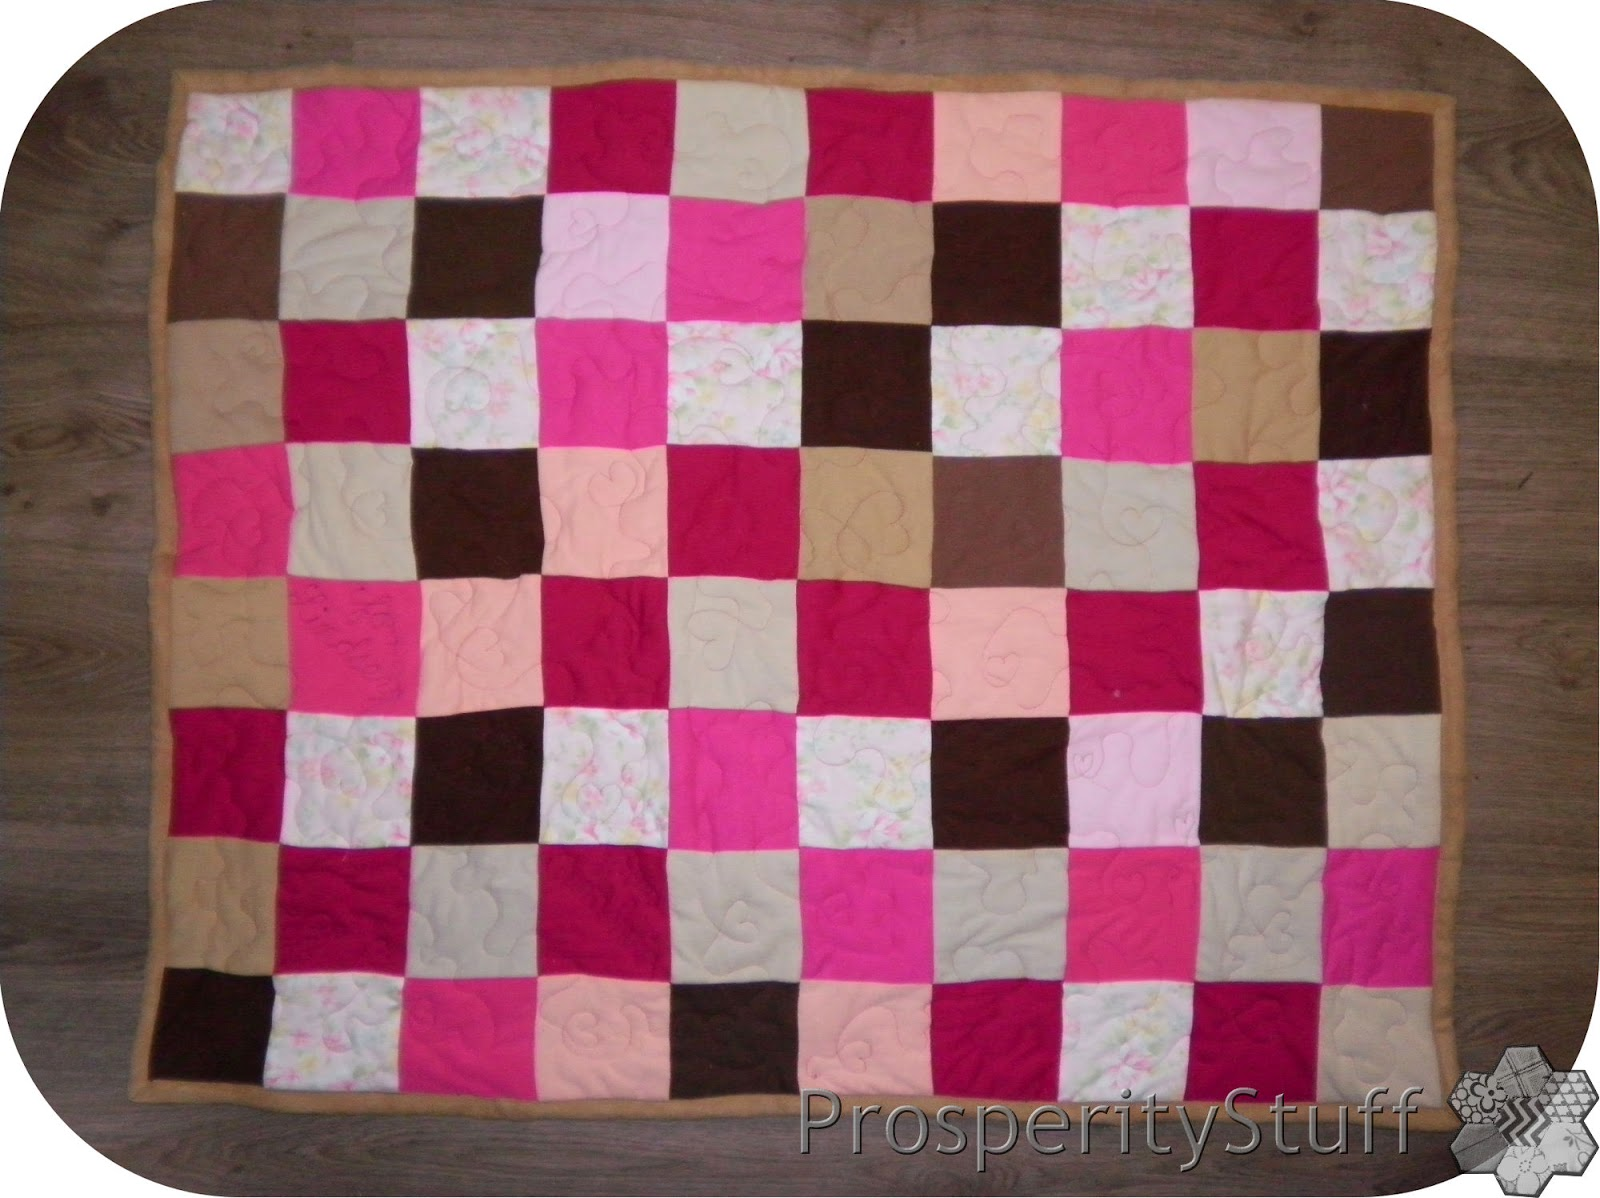 ProsperityStuff Quilts: My Quilts - photo#19